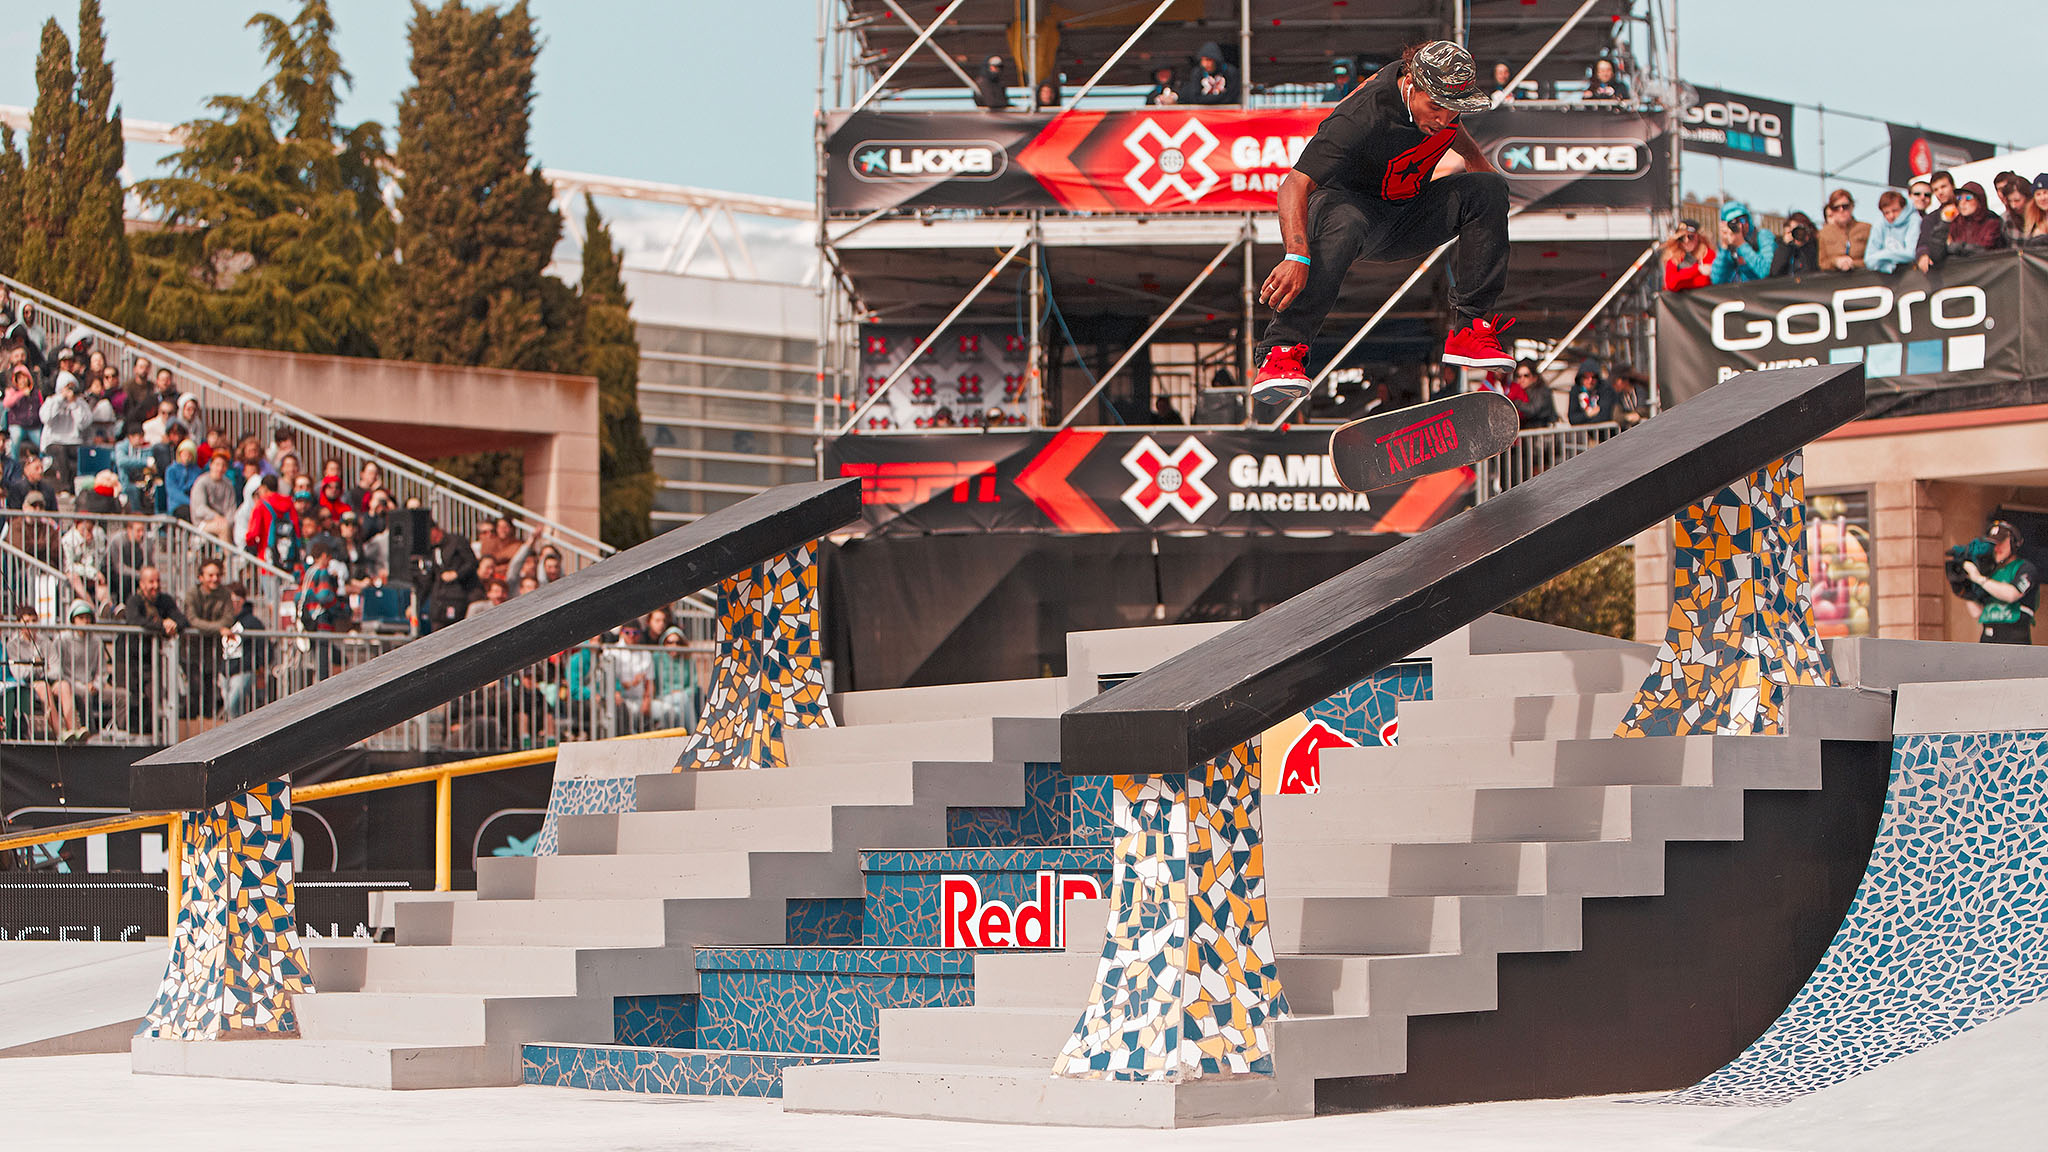 Manny Santiago has won the past two SLS events, earning himself an entry into the Street League at X Games events the past two X Games. Can he do it again on Thursday?